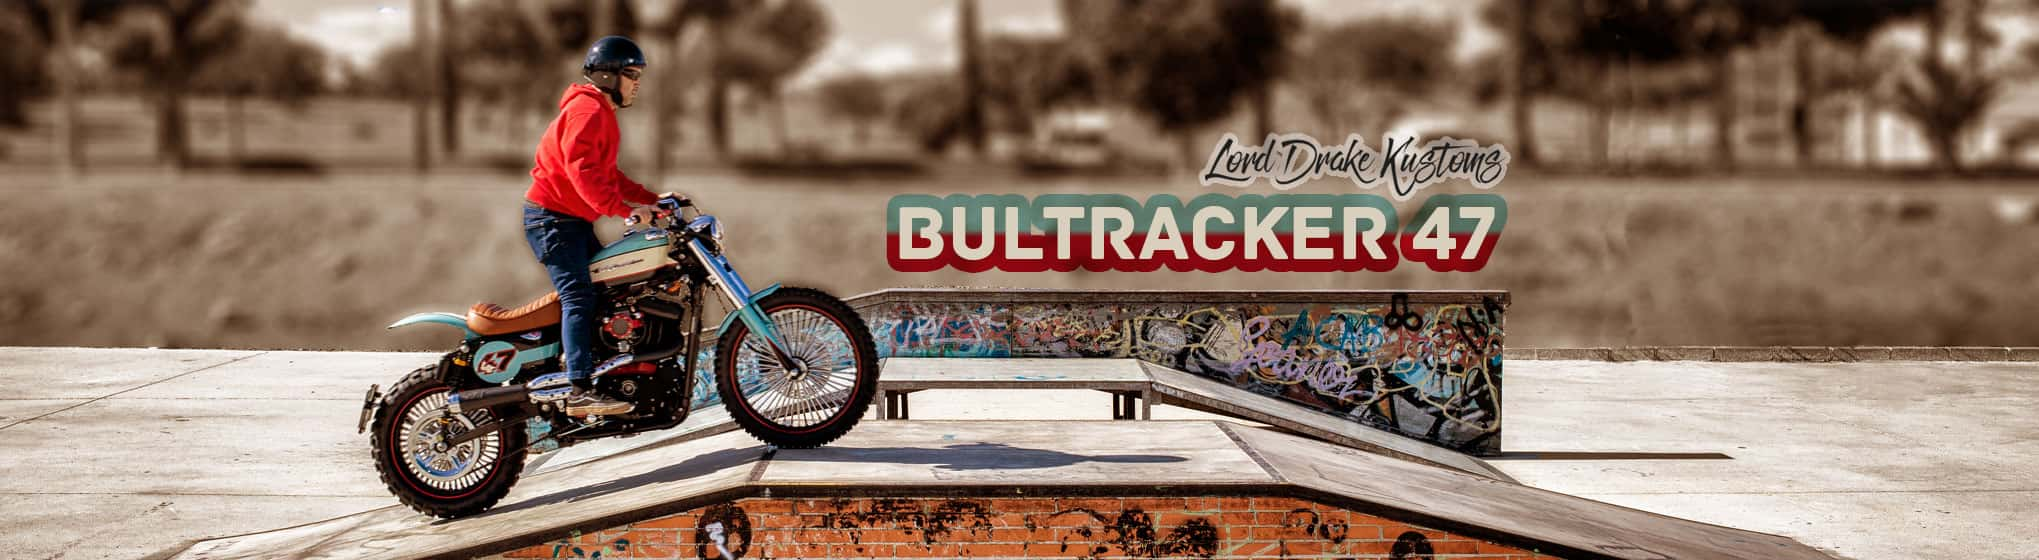 Slider Bultracker 47 by Lord Drake Kustoms